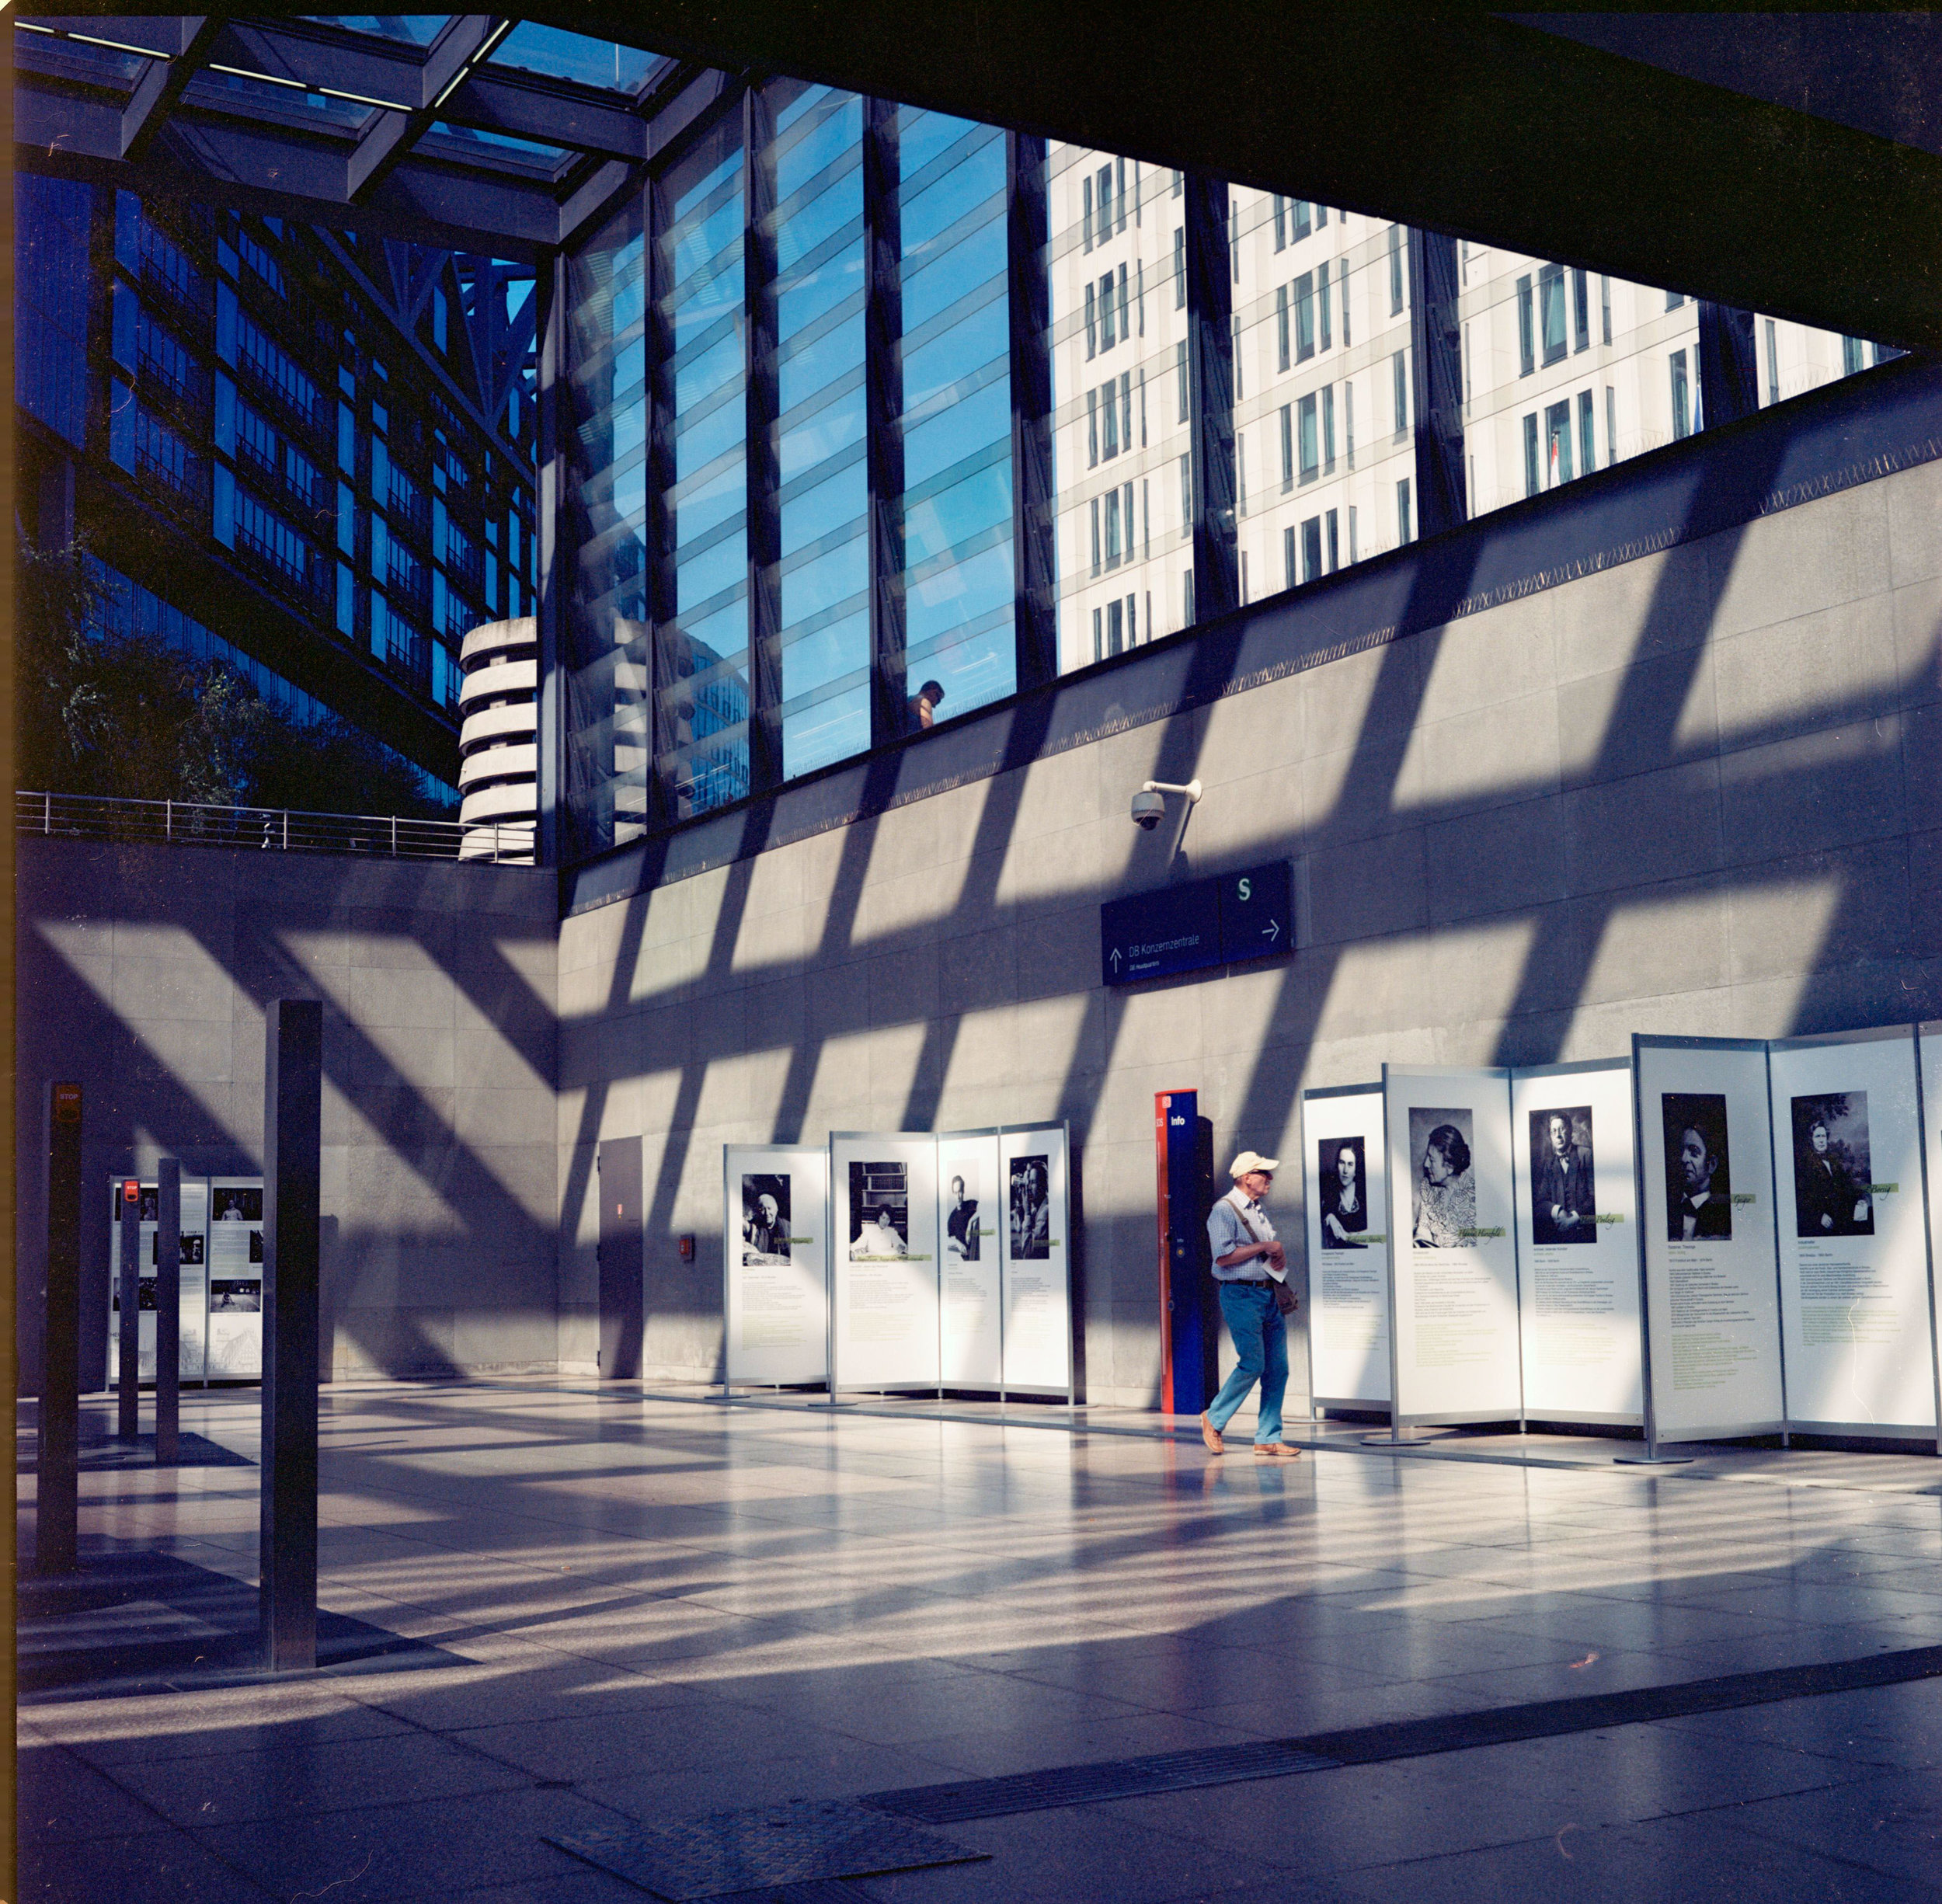 Berlin Subway - Kodak Ektar 100.